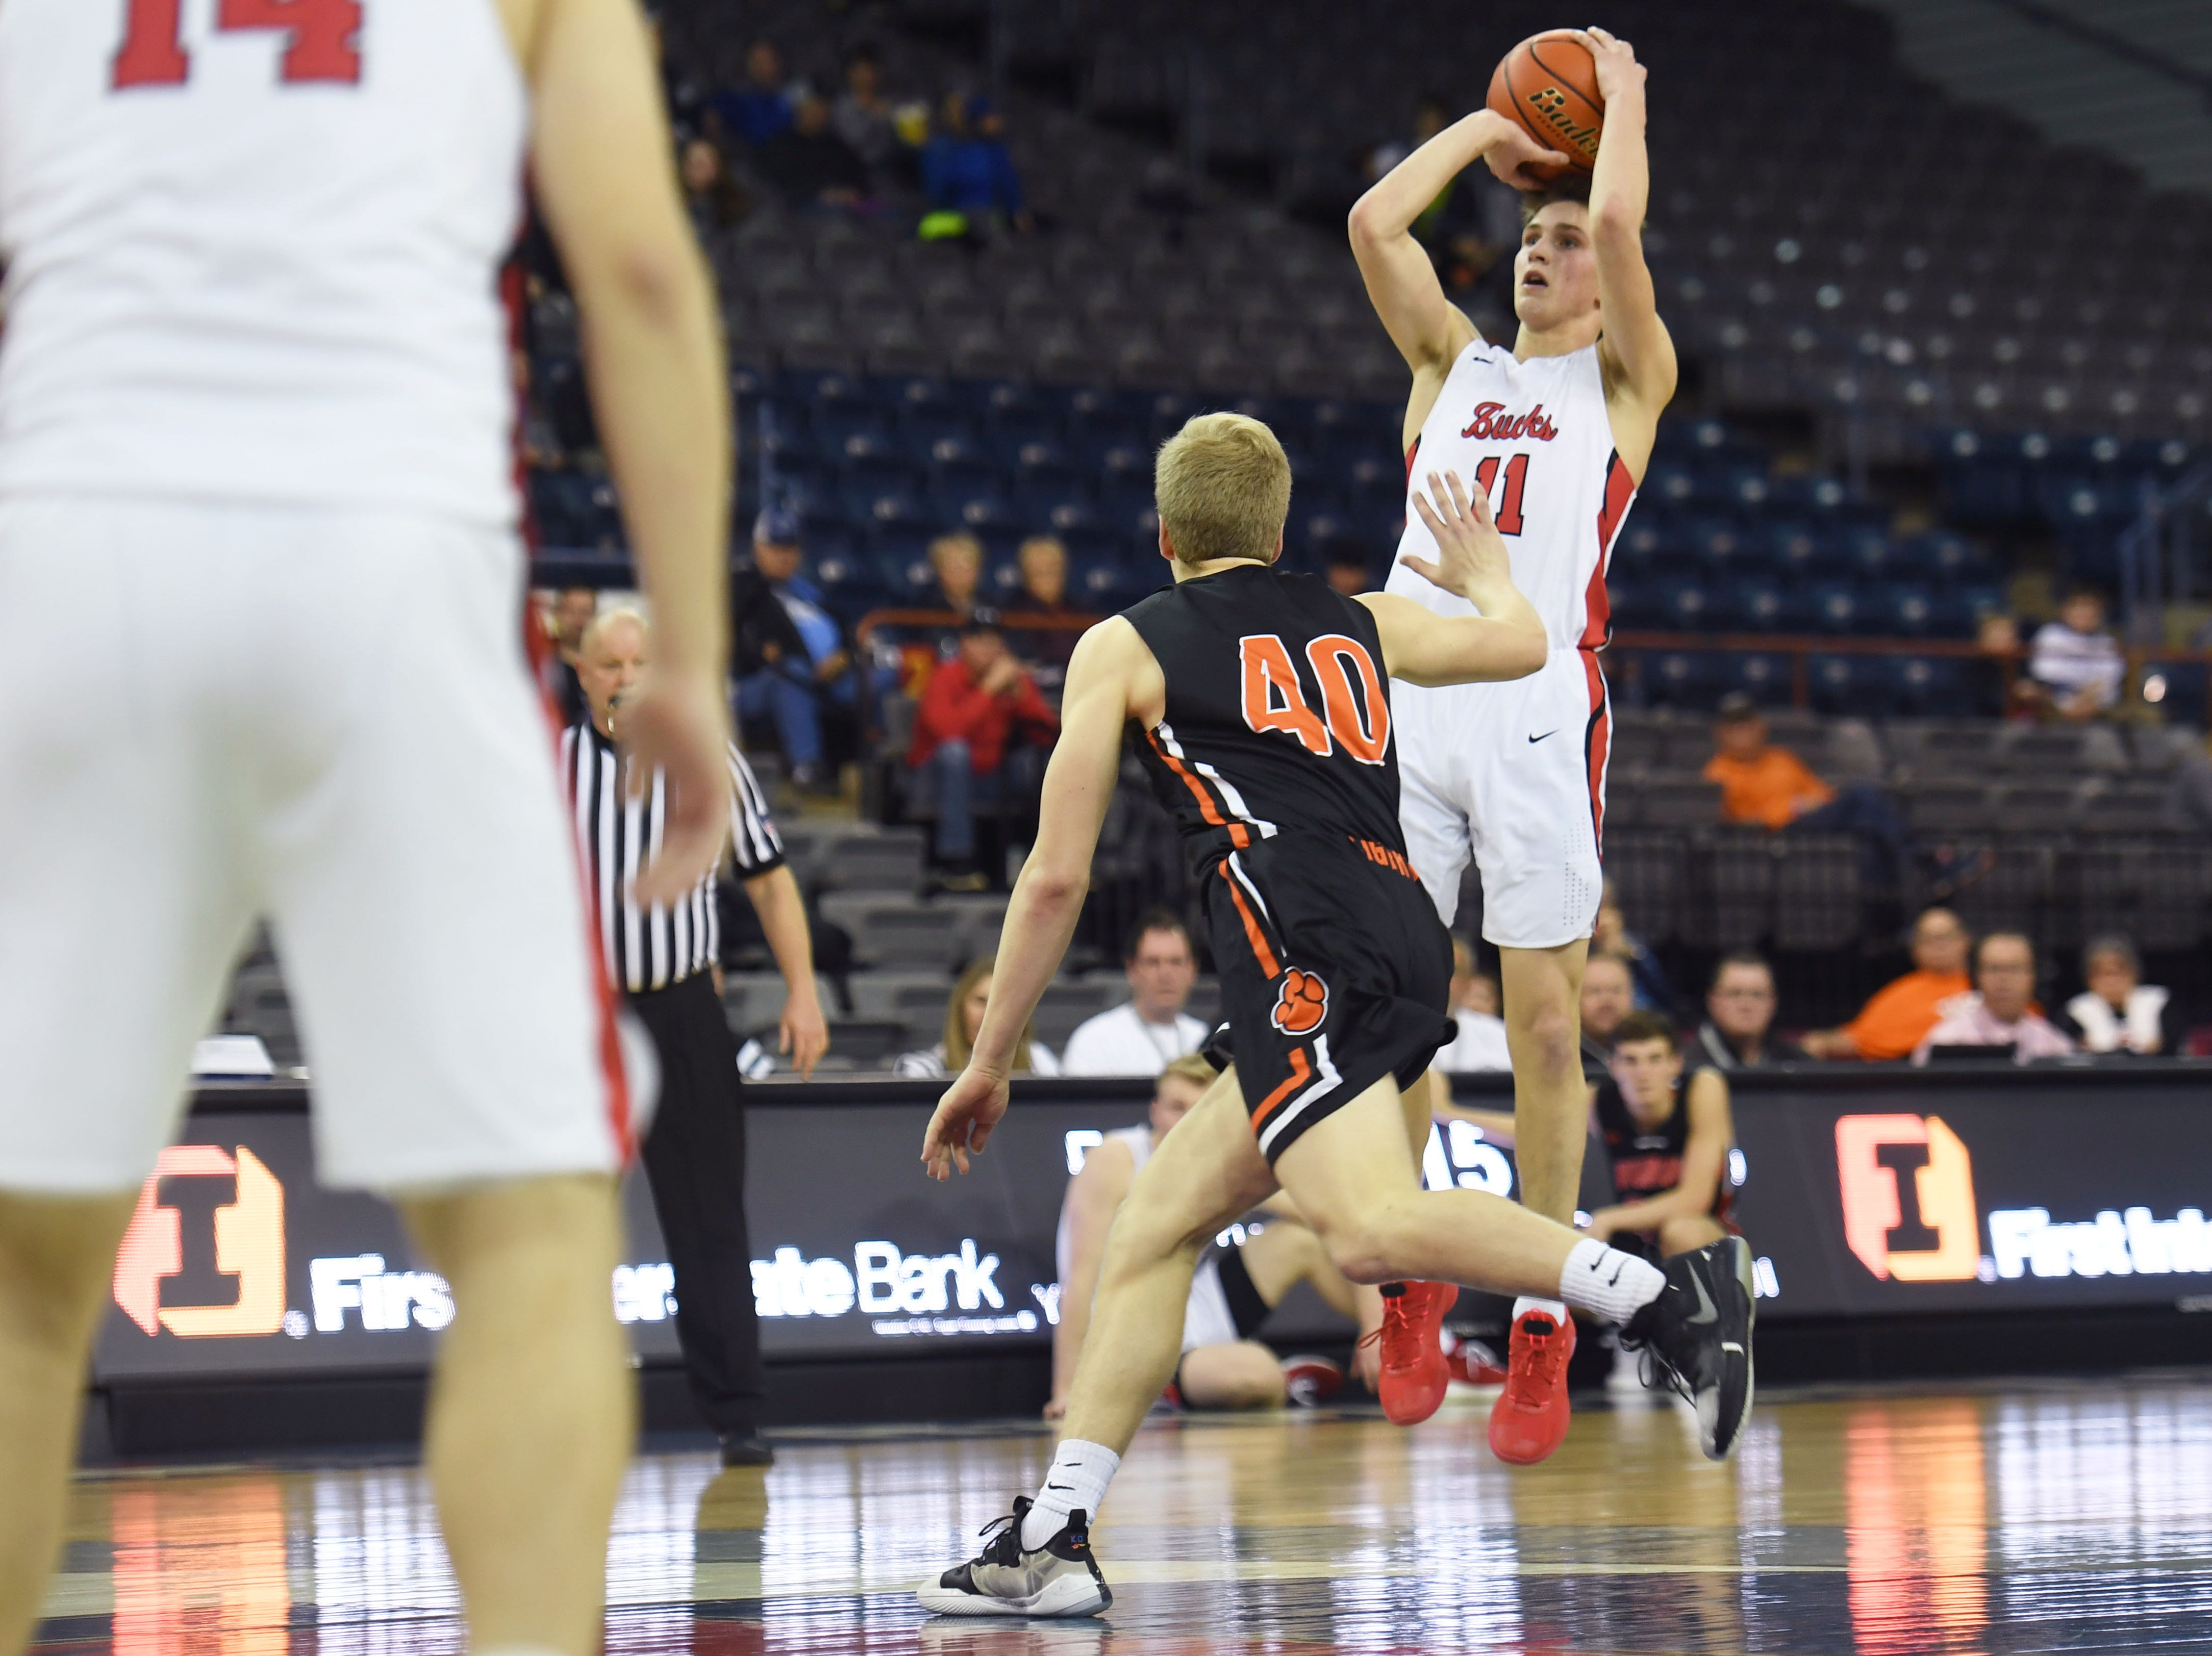 Yankton's Cooper Cornemann takes a shot against Huron in the Class AA quarterfinals Thursday, March 14, in Rapid City.